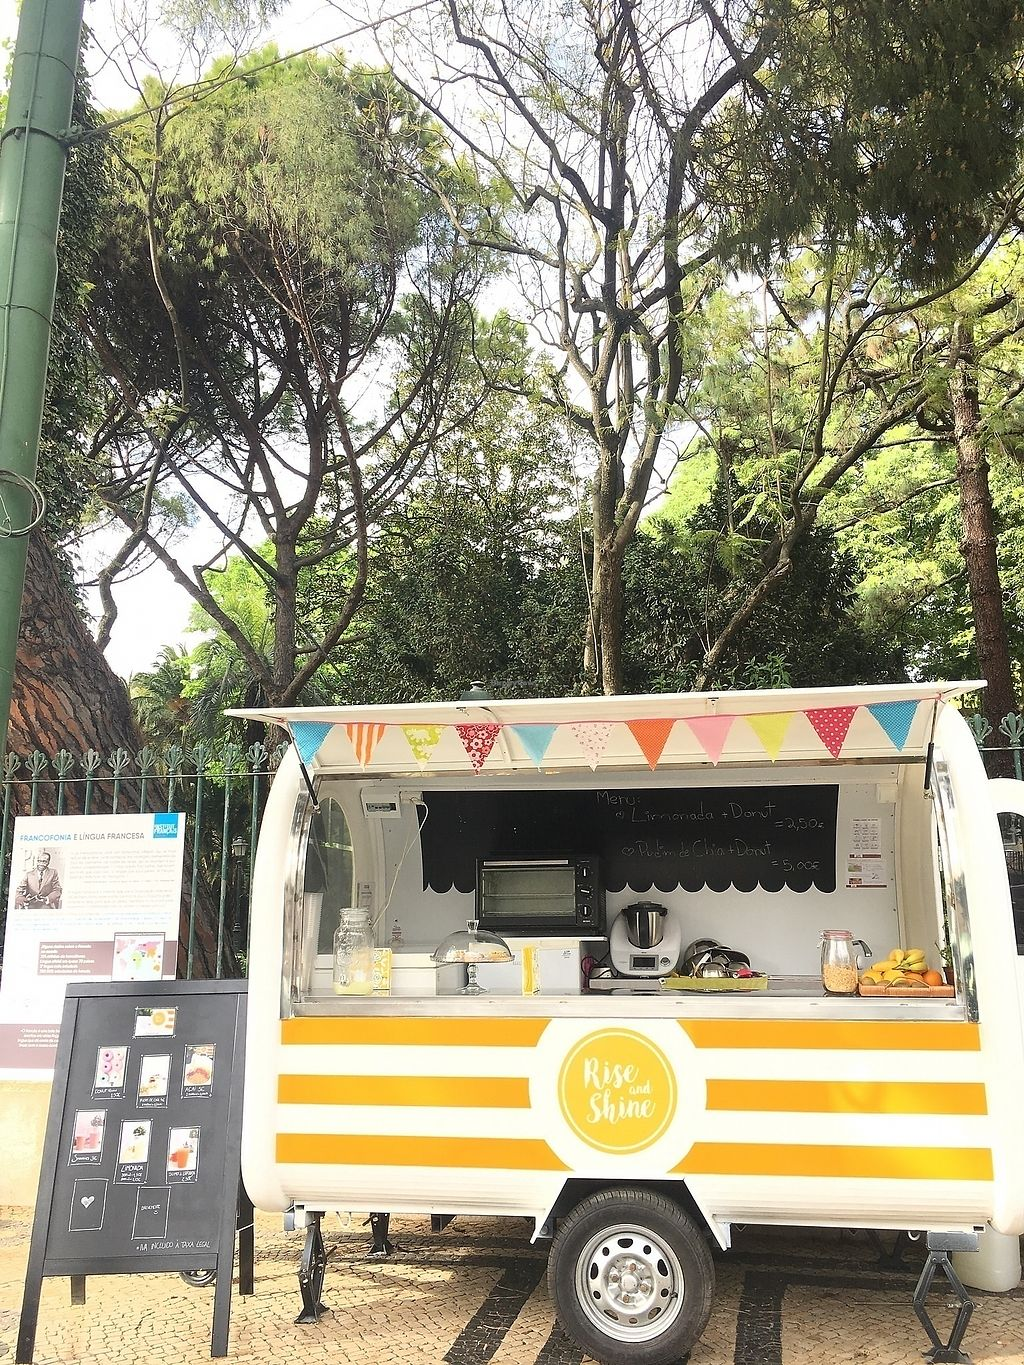 """Photo of Rise and Shine  by <a href=""""/members/profile/MatildeAmaral"""">MatildeAmaral</a> <br/>Vegan Food Truck! <br/> July 2, 2017  - <a href='/contact/abuse/image/95245/275878'>Report</a>"""